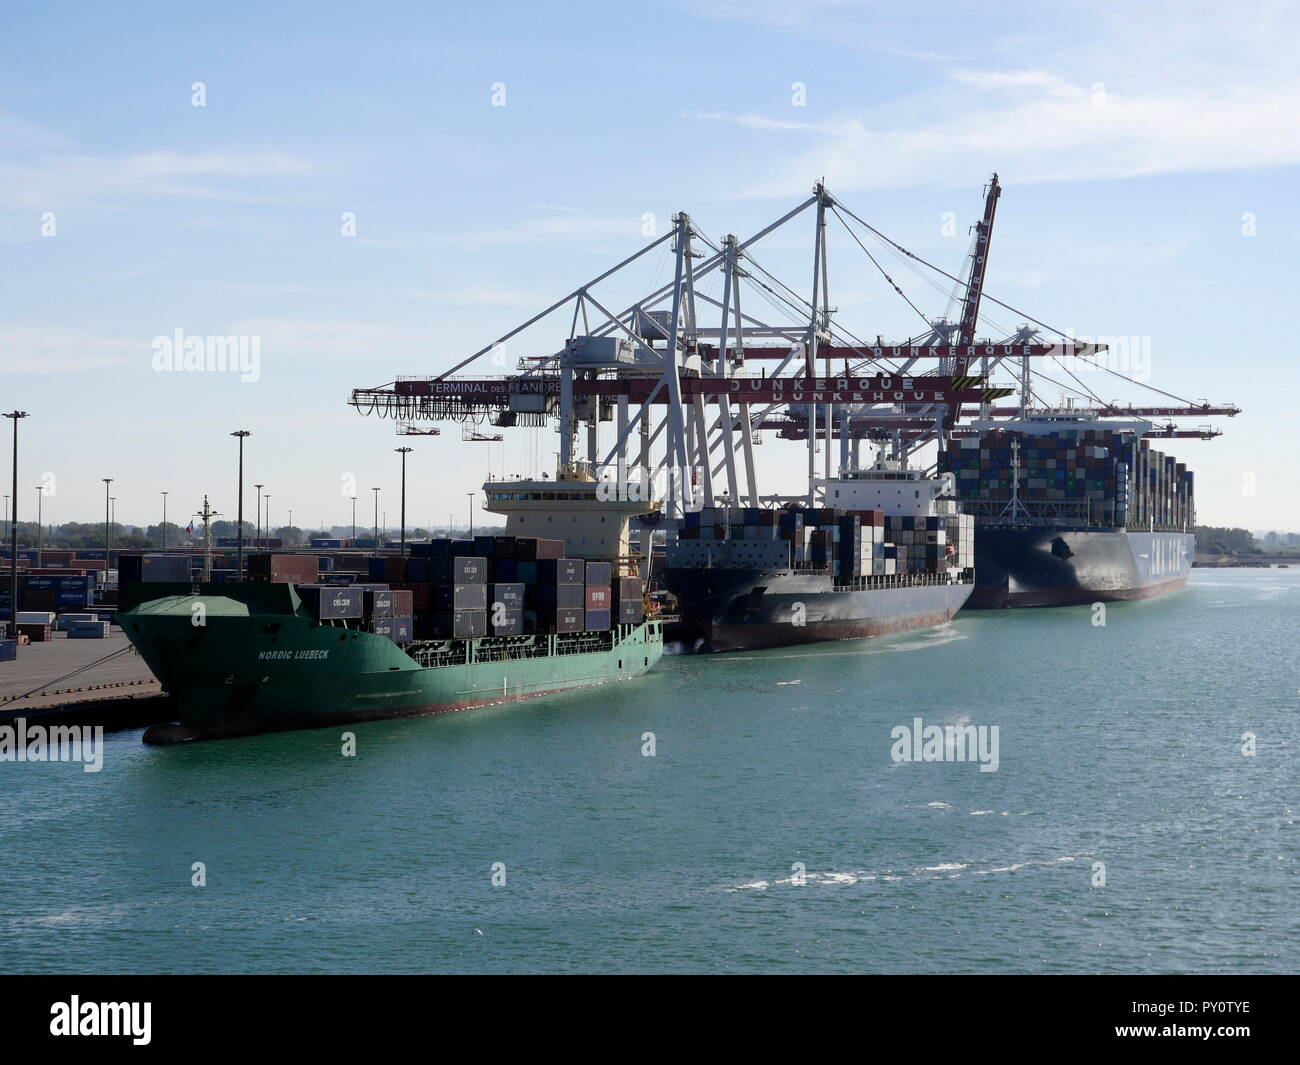 AJAXNETPHOTO. 2018. DUNKERQUE, FRANCE. - SHIPPING FREIGHT - COASTAL AND OCEAN GOING CONTAINER SHIPS LOADING AT THE TERMINAL DE FLANDRE. PHOTO:JONATHAN EASTLAND/AJAX REF:GX8 182009 871 Stock Photo